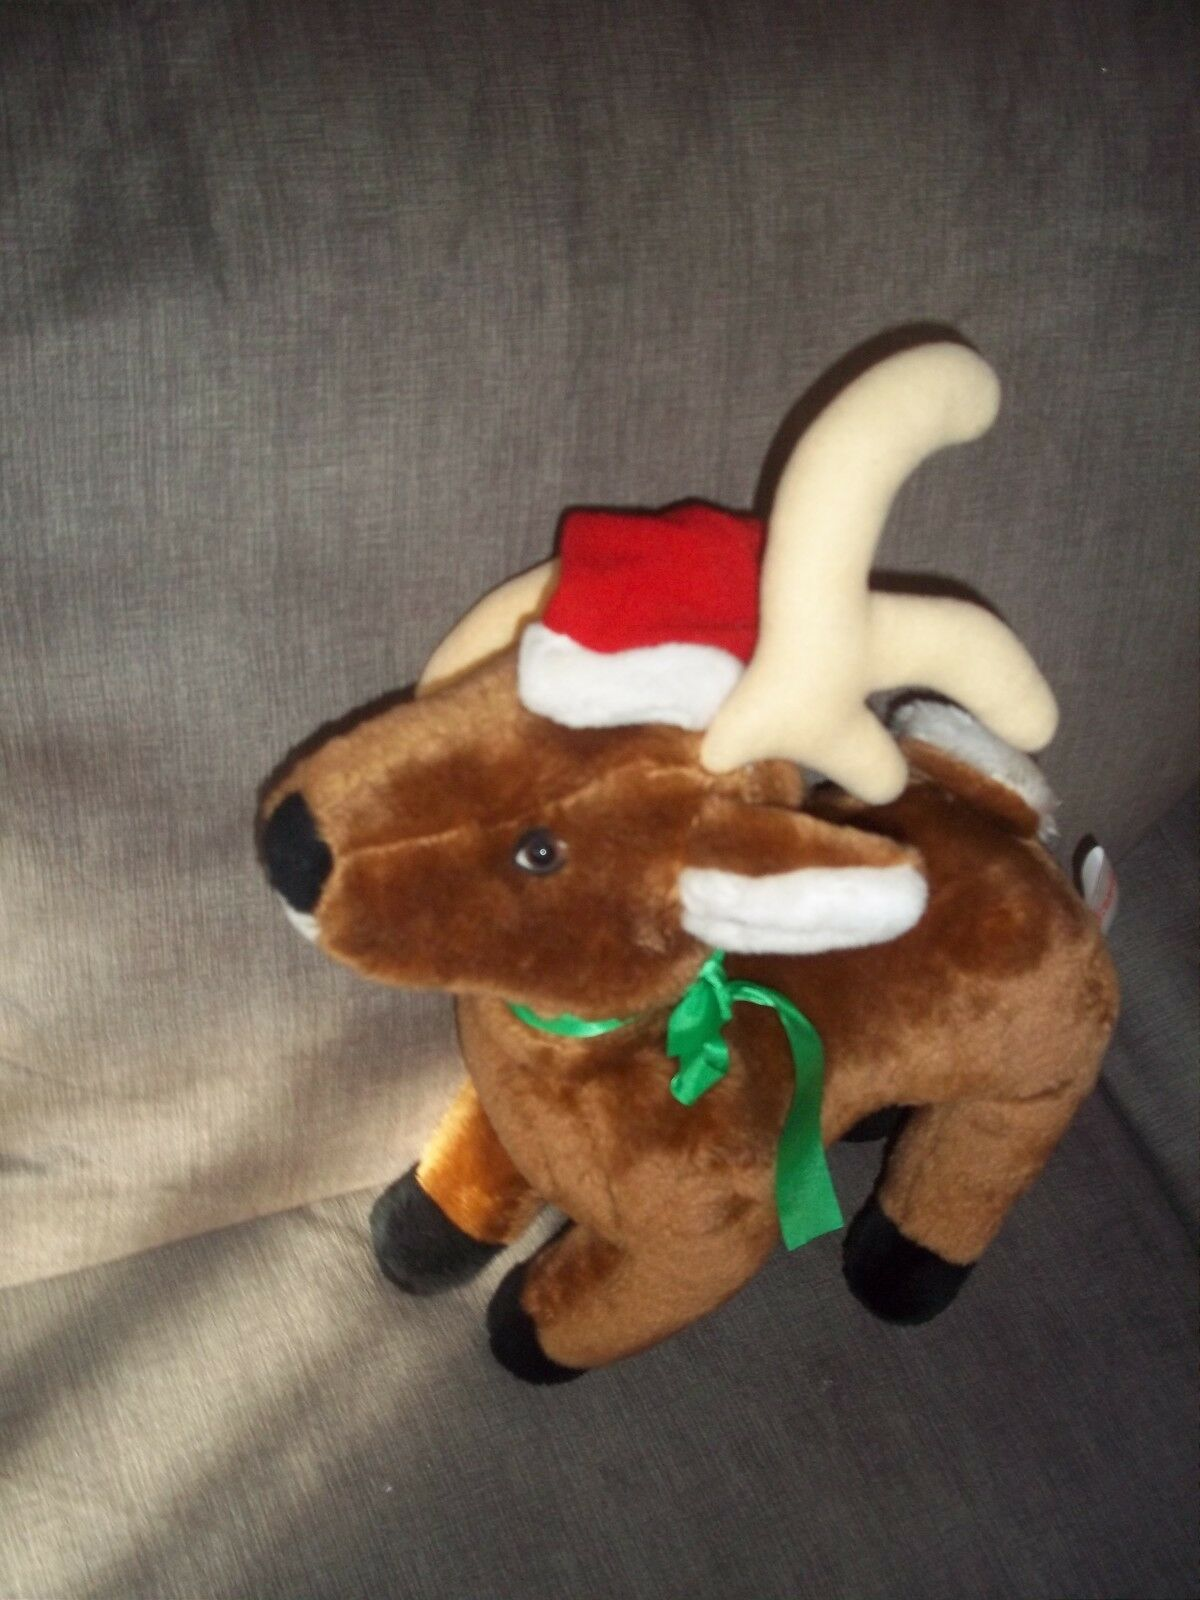 RARE VINTAGE FUN WORLD PLUSH DOLL FIGURE CHRISTMAS NOVELTY REINDEER TOY DECOR